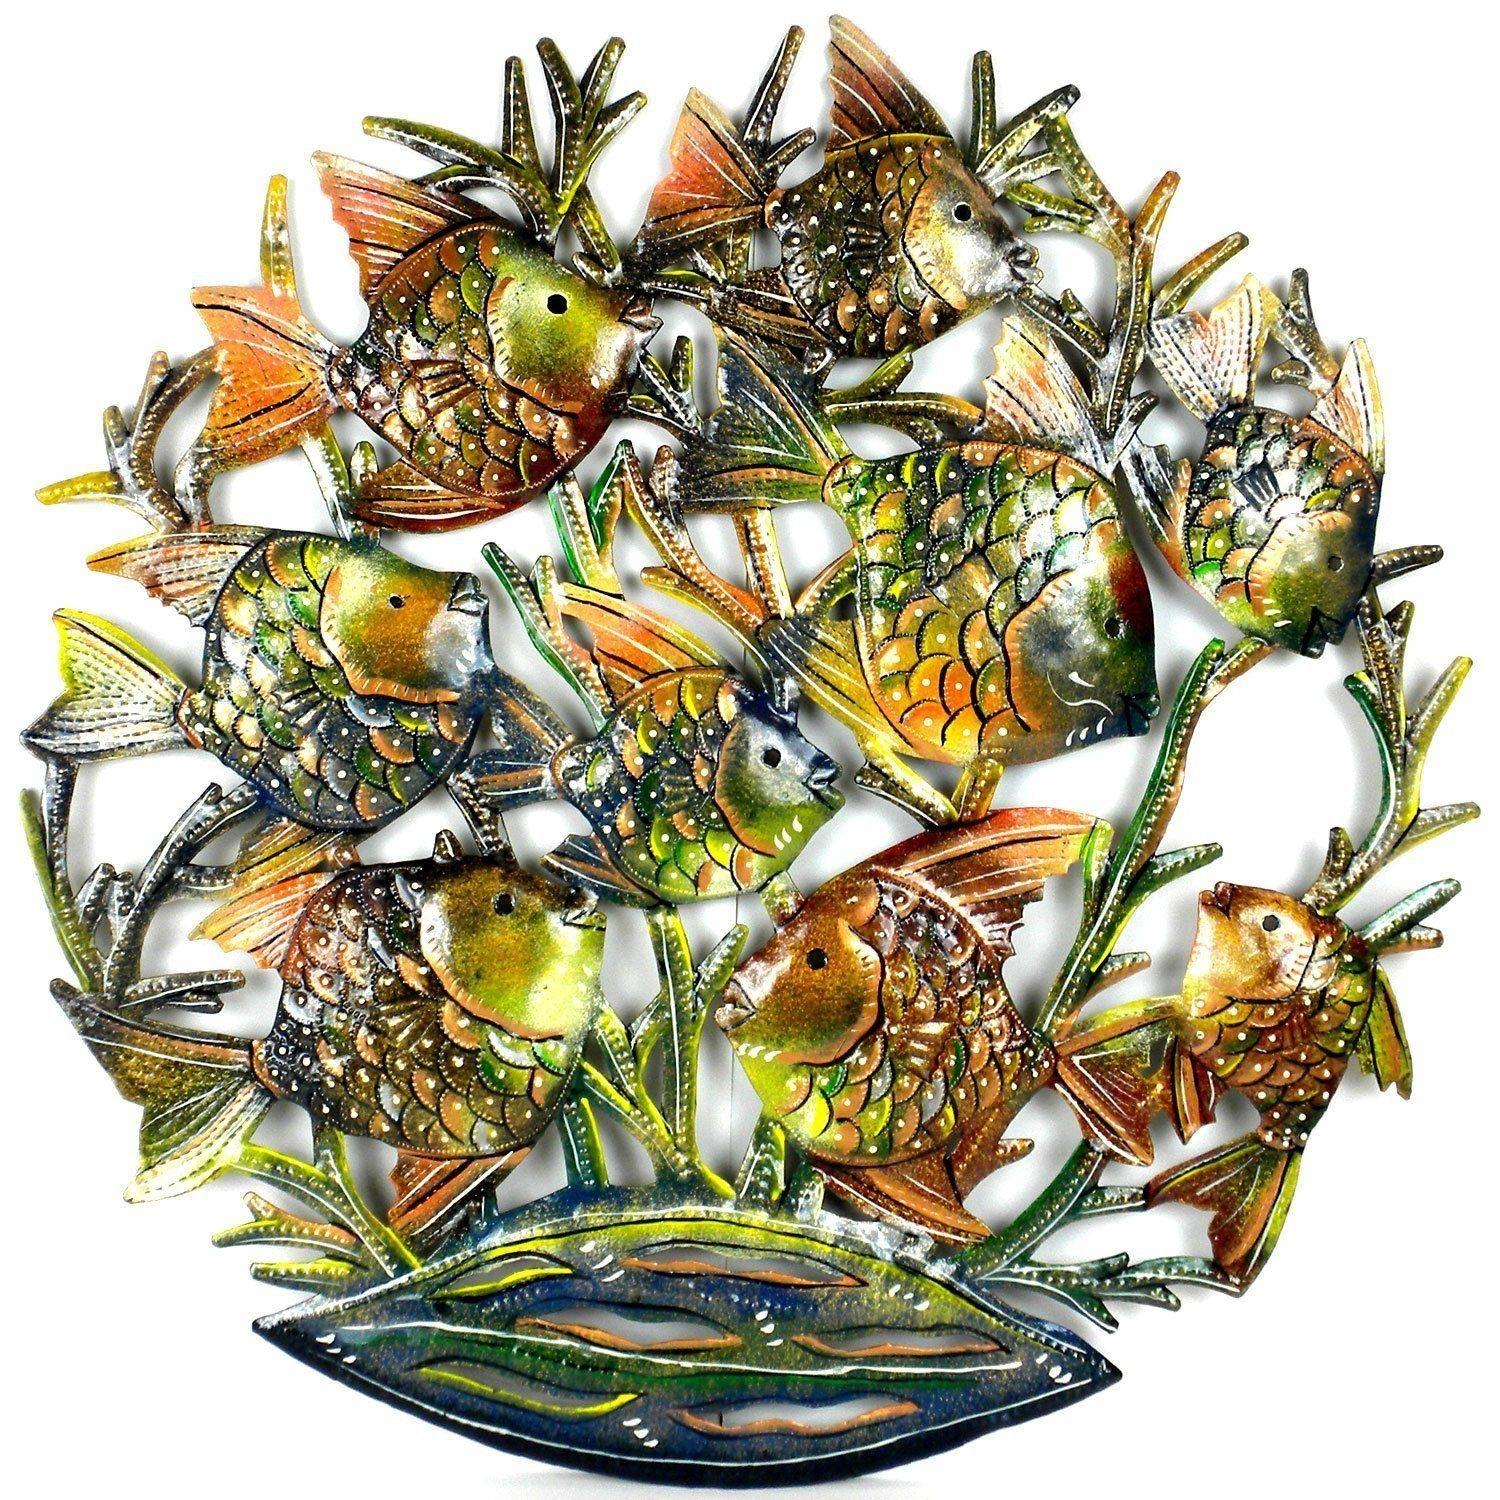 24 Inch Painted School Of Fish Metal Wall Art – Croix Des Bouquets Within 2017 School Of Fish Metal Wall Art (View 1 of 20)